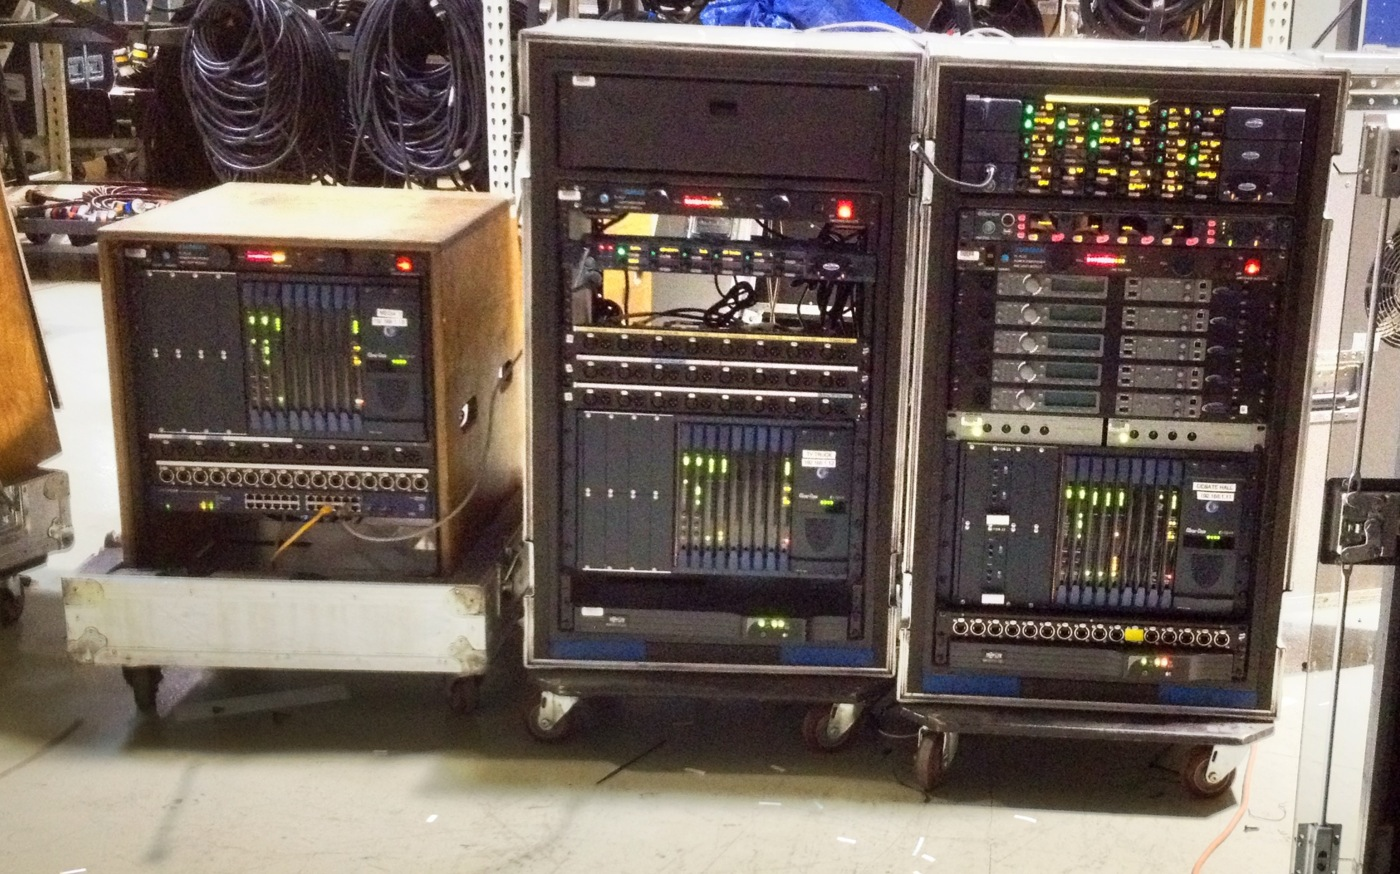 In the OSA shop the three Clearcom Eclipse nodes, HelixNet beltpacks and Tempest 2400 Intelligent roaming racks were assembled.